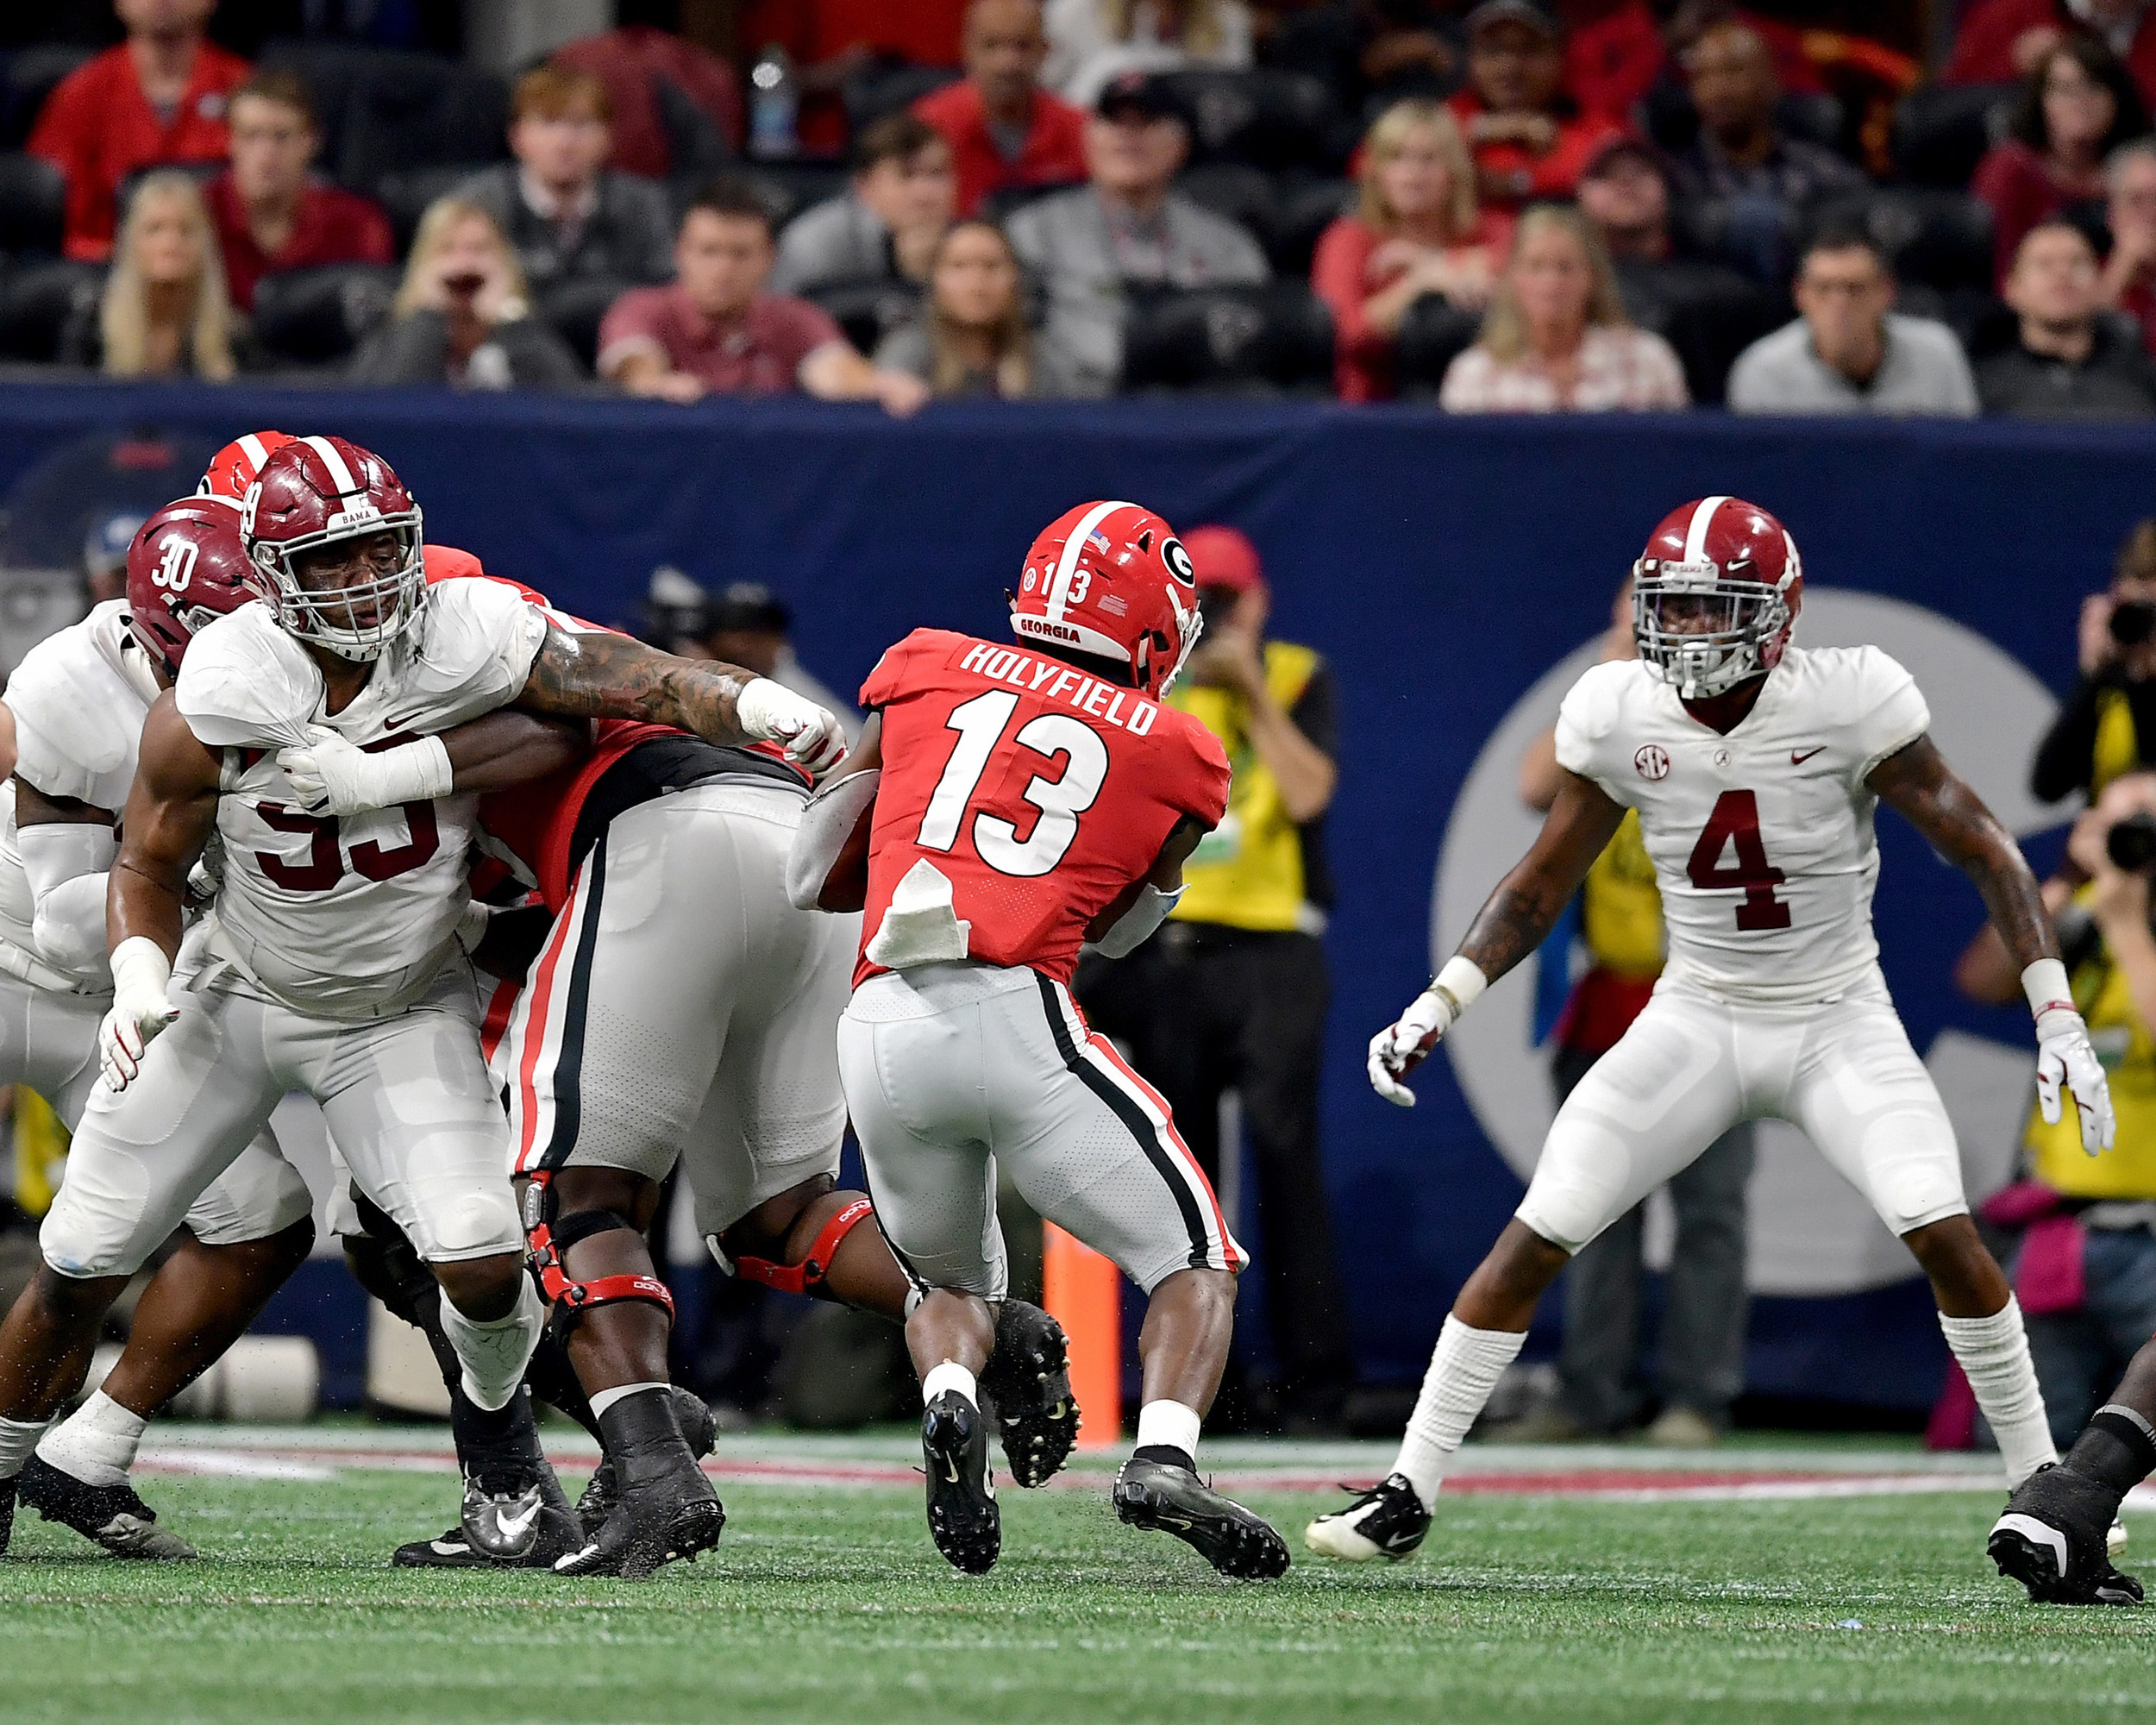 Georgia Bulldogs running back Elijah Holyfield (13) with a carry up the middle during the first half of the 2018 SEC Championship football game at Mercedes-Benz Stadium in Atlanta, Ga., on Dec. 1, 2018. Alabama wins 35-28. (Photo by Lee Walls)